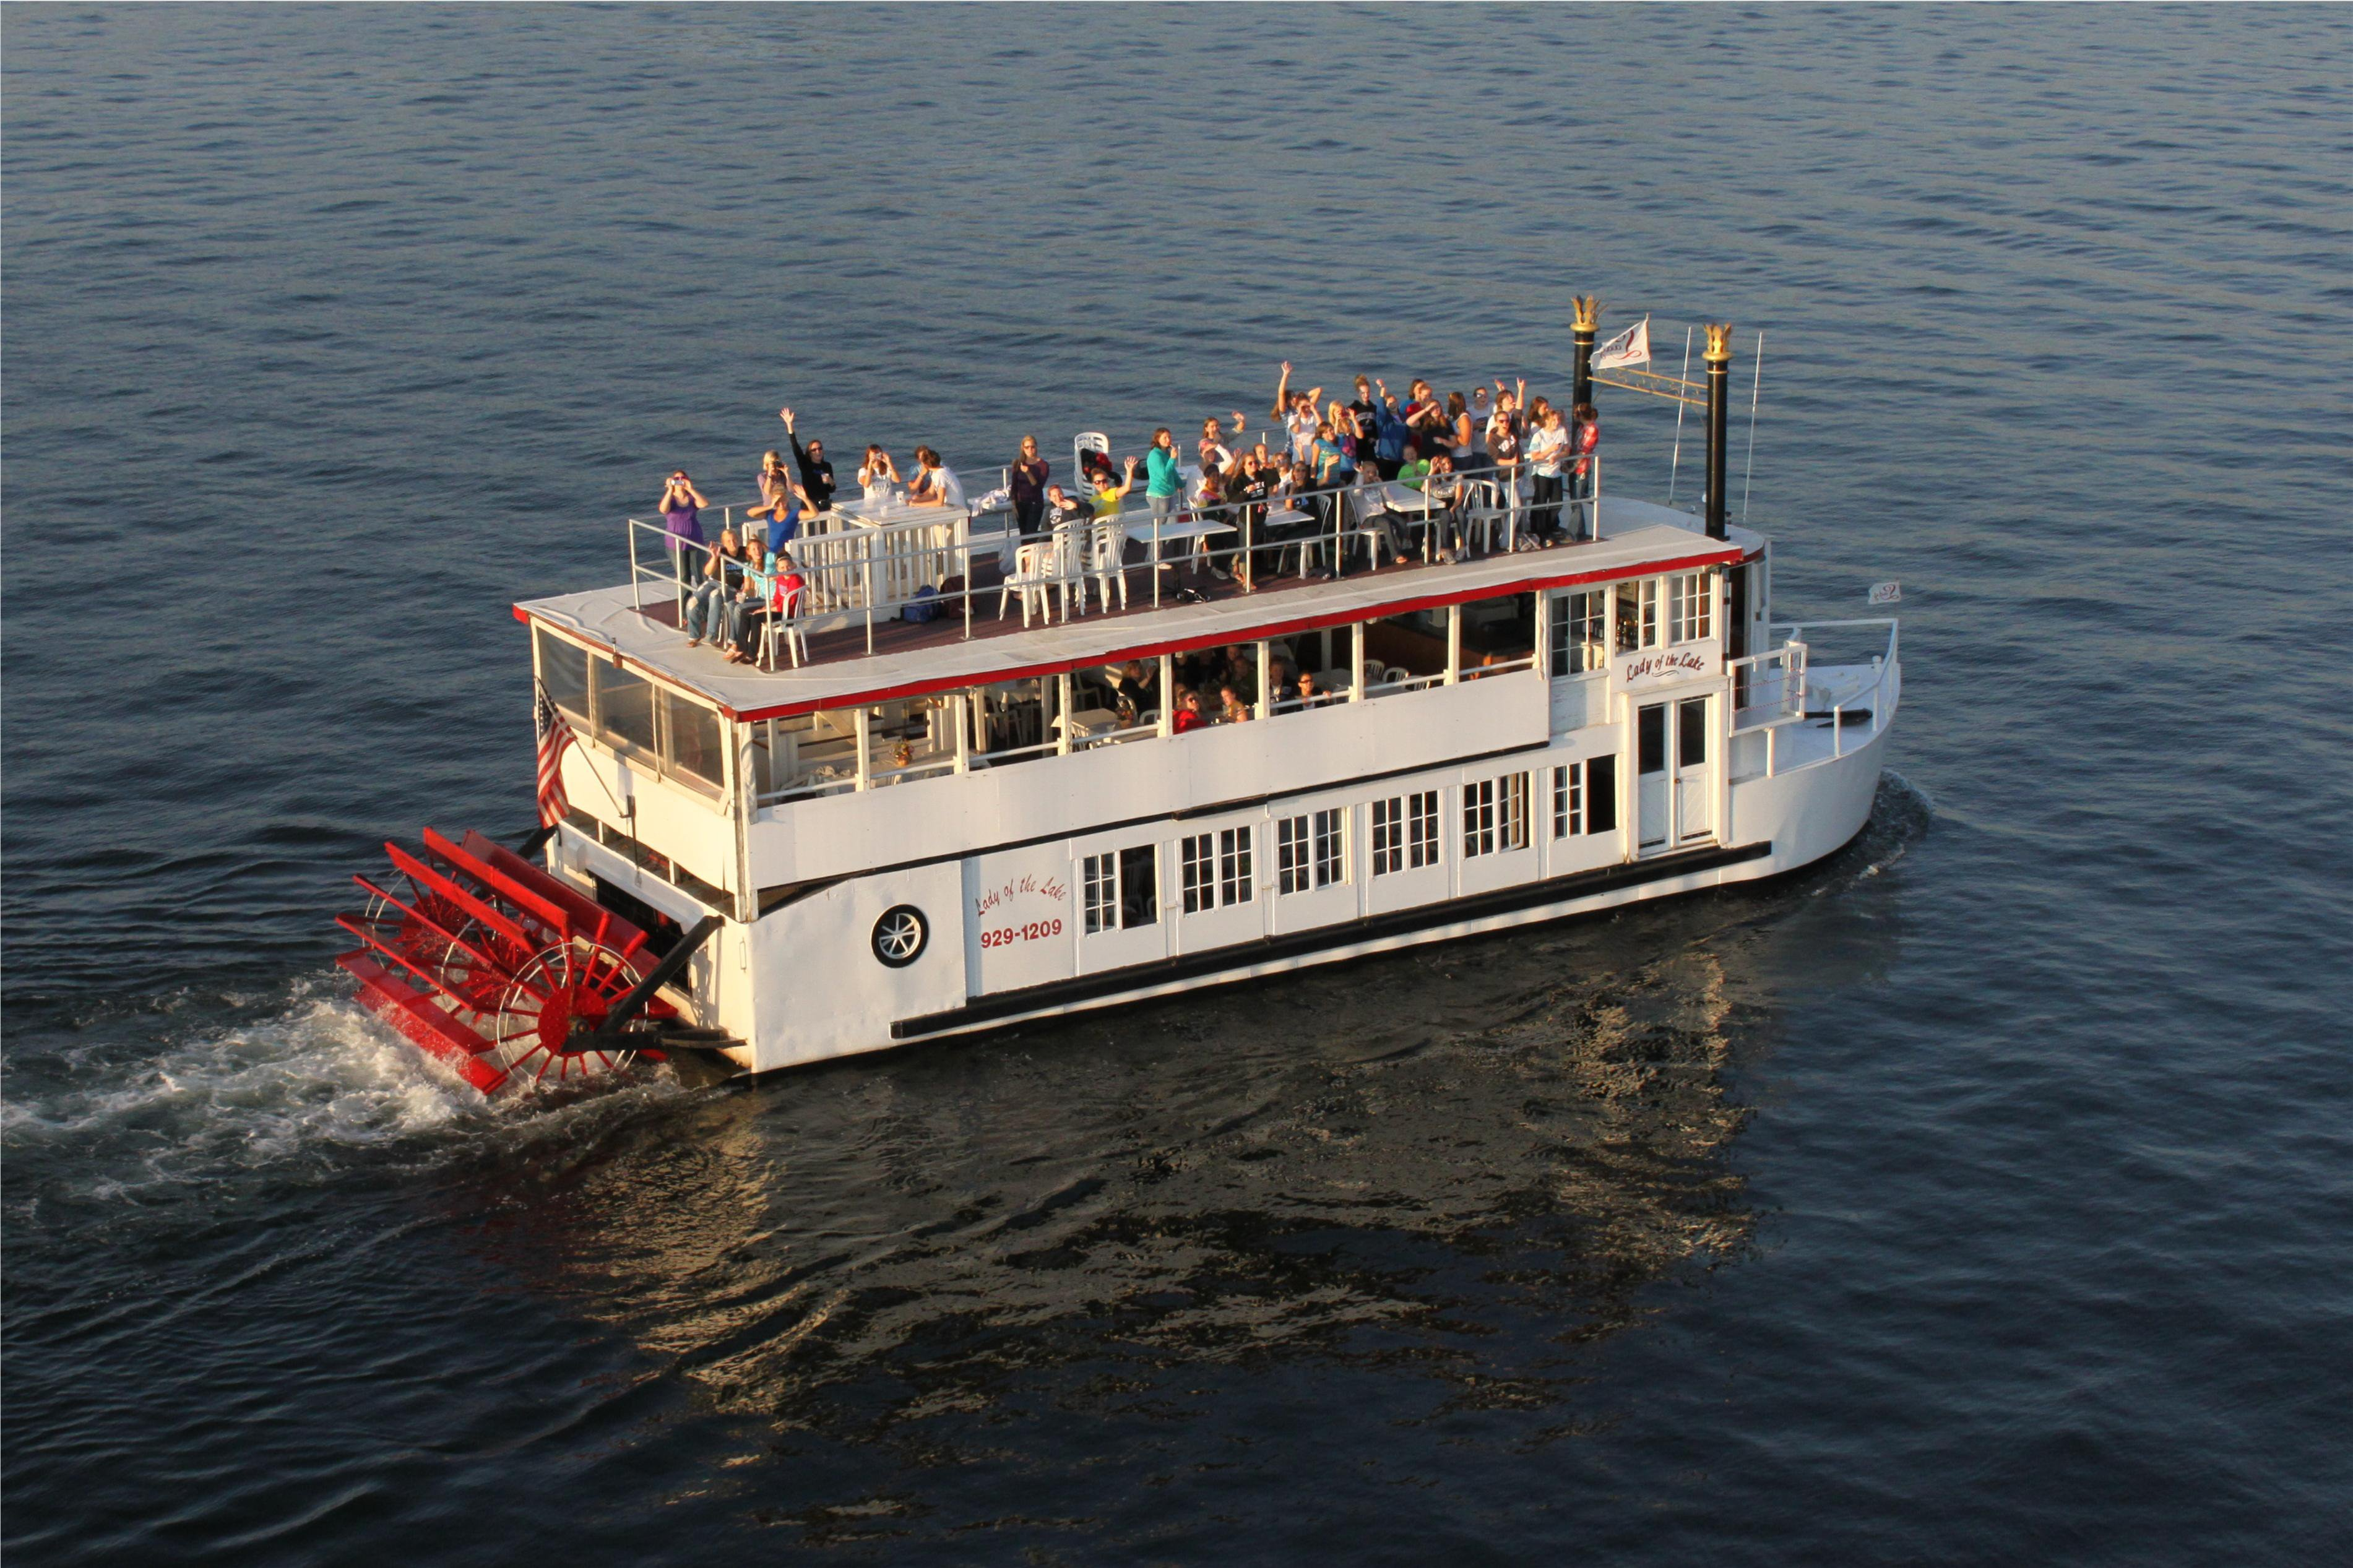 View of the Lady of the Lake on Lake Minnetonka from above.